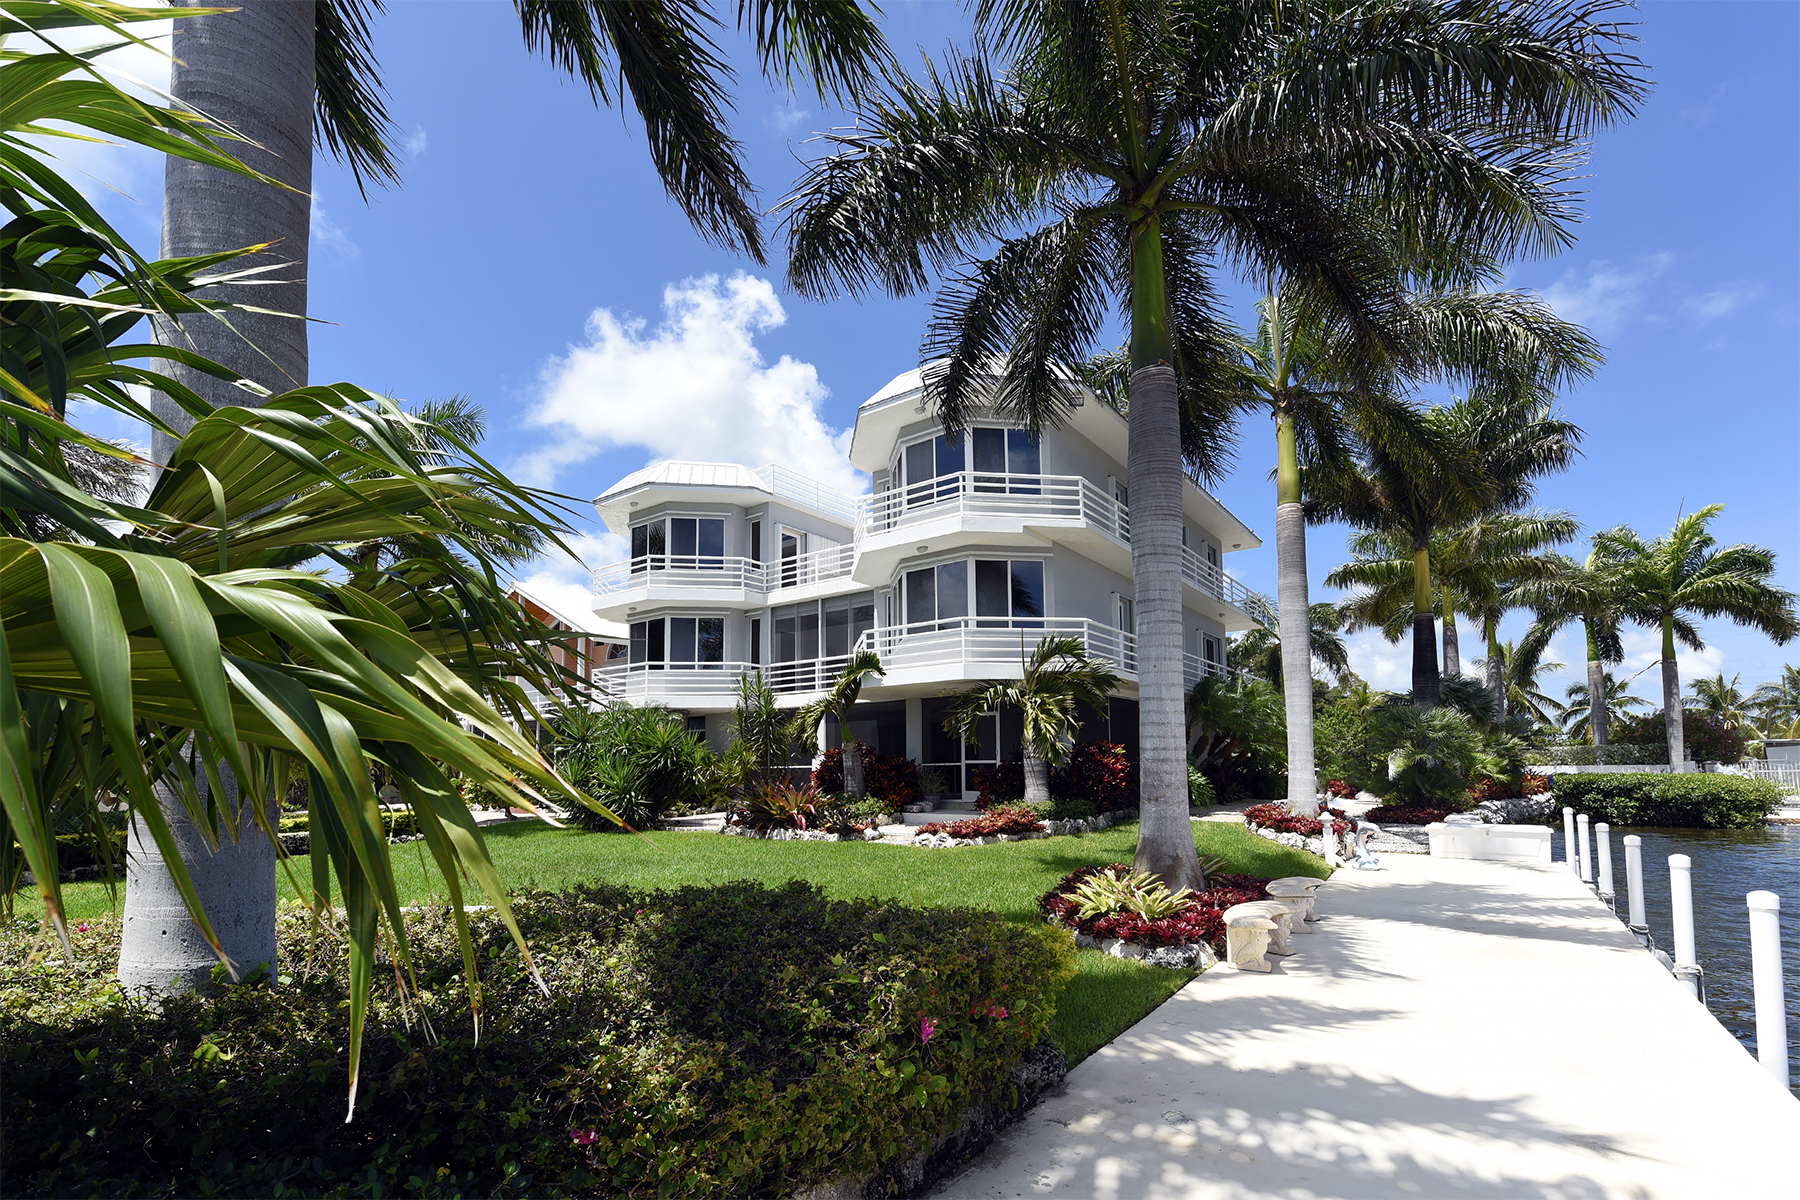 Casa Unifamiliar por un Venta en Grand Bayfront Estate 569 Hazel Street Key Largo, Florida, 33037 Estados Unidos